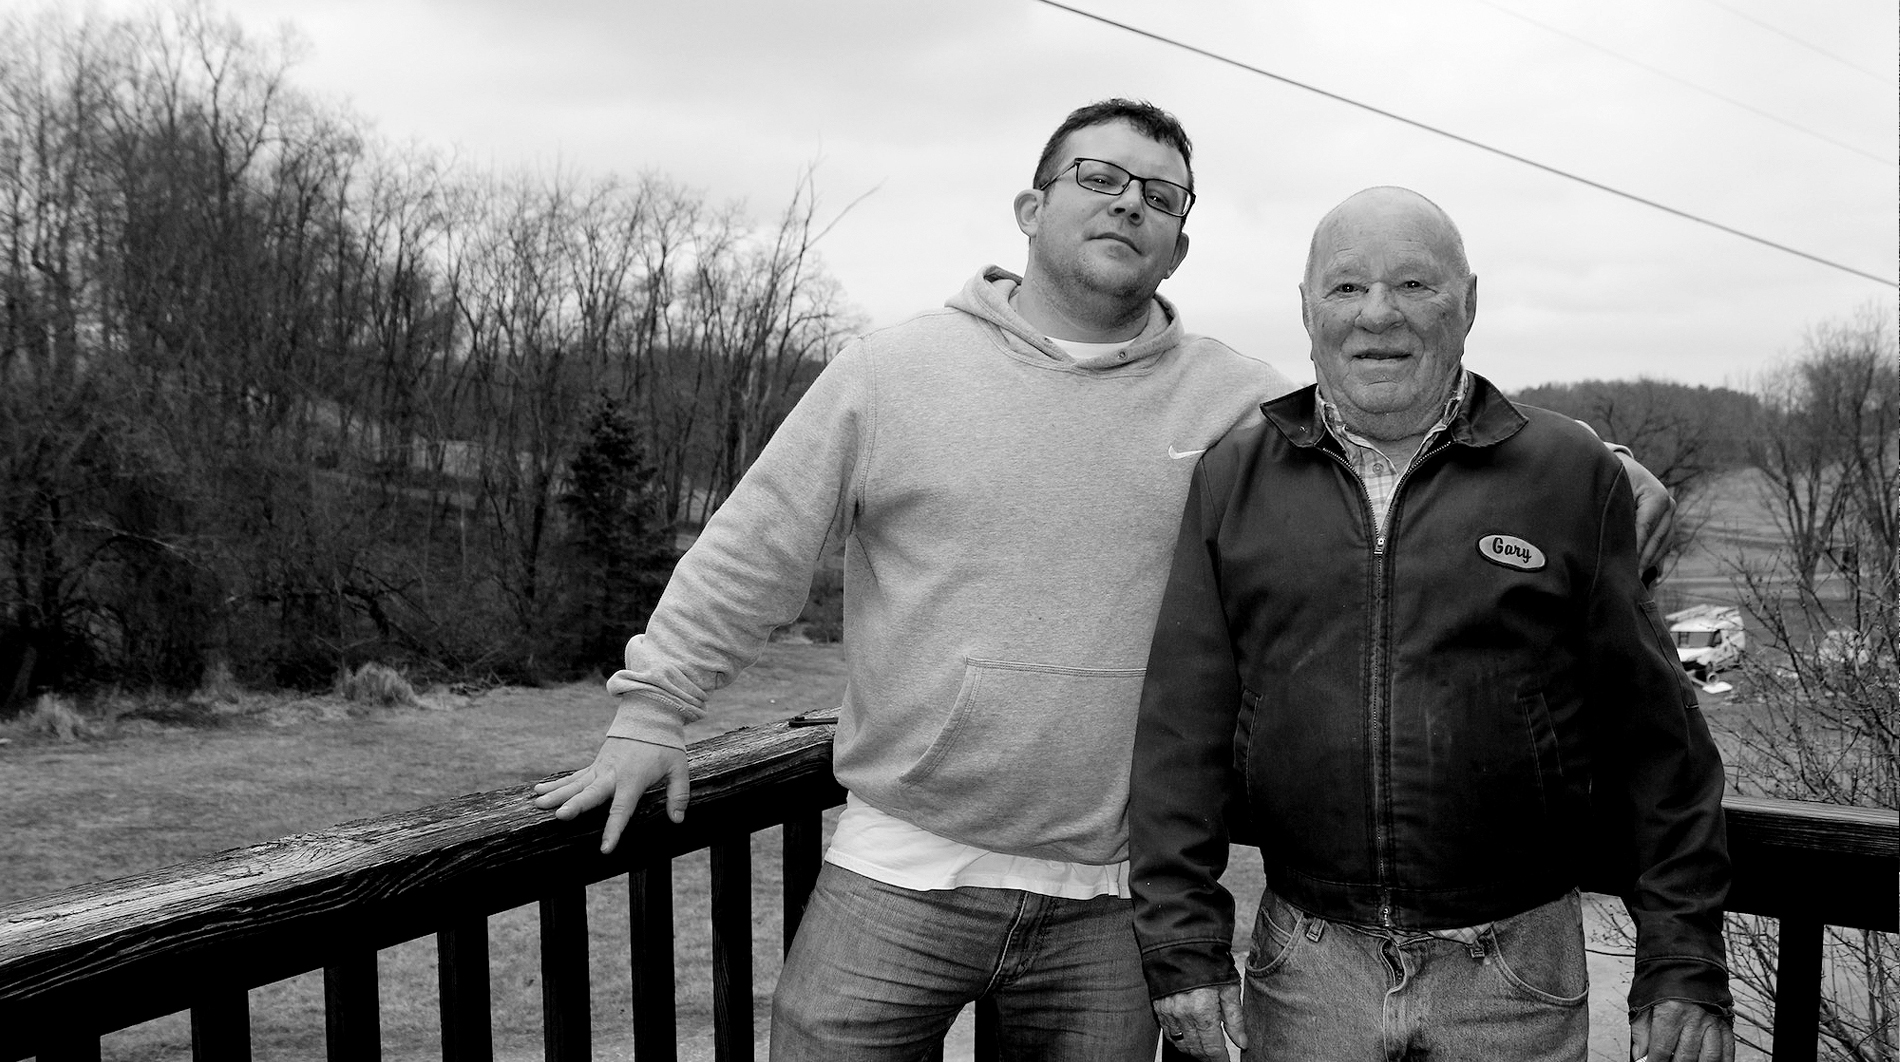 David Stanley stands next to his dad on their porch overlooking the scenic farmland that surrounds their home.